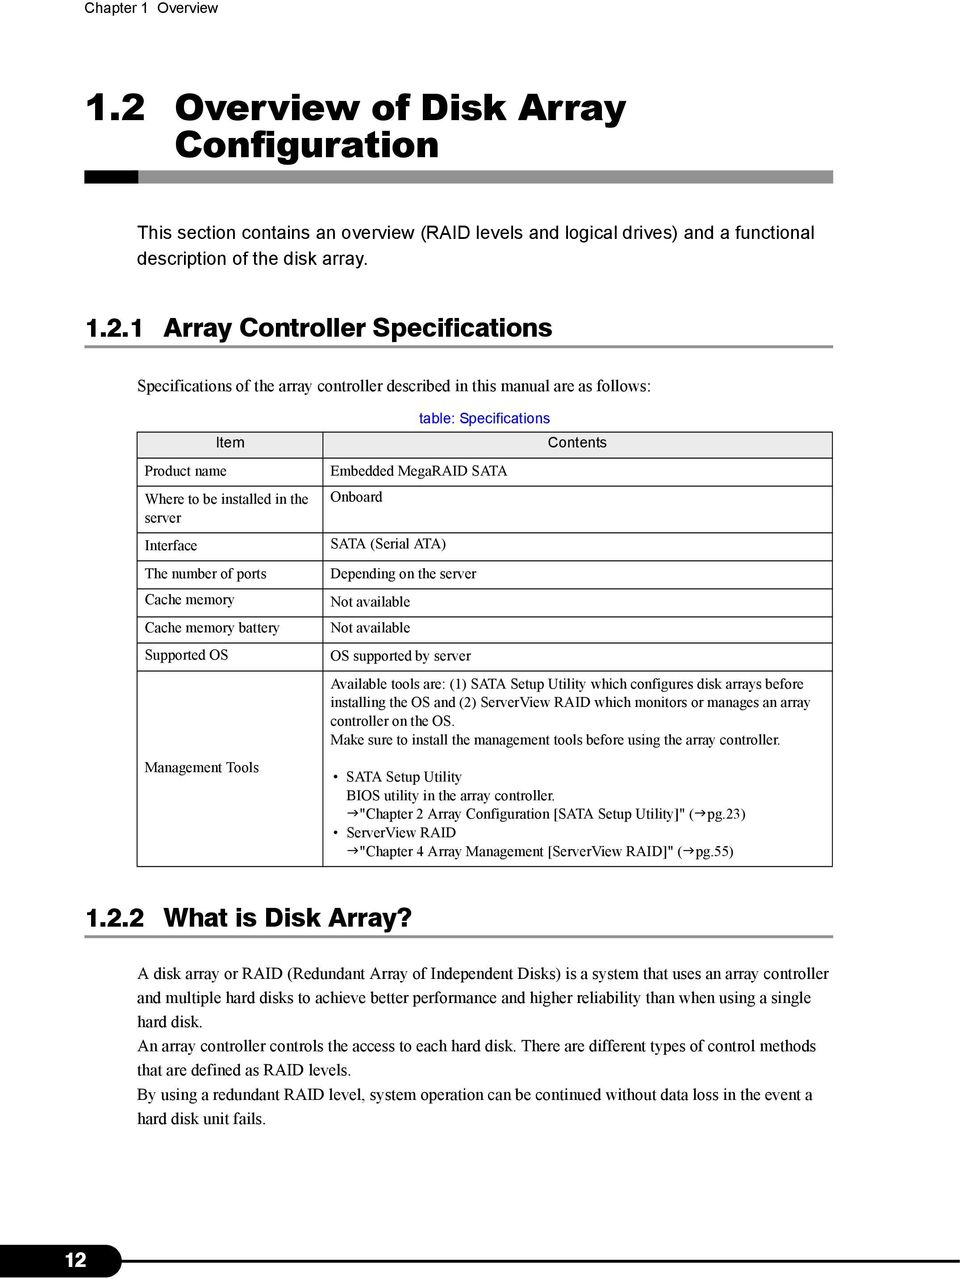 1 Array Controller Specifications Specifications of the array controller described in this manual are as follows: Item Product name Where to be installed in the server Interface The number of ports